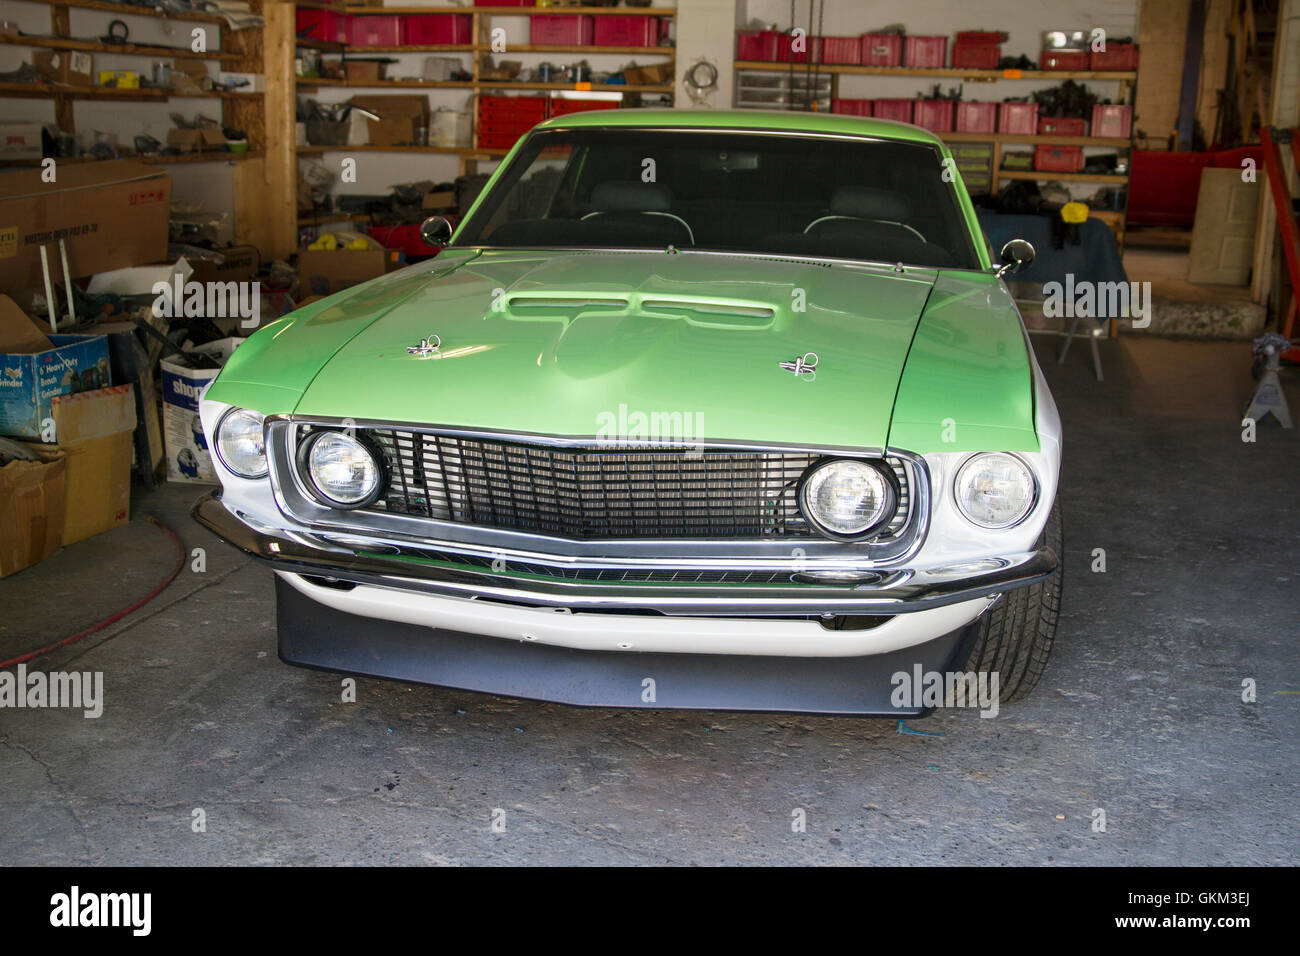 Finished rebuild of a Ford Mustang - Stock Image